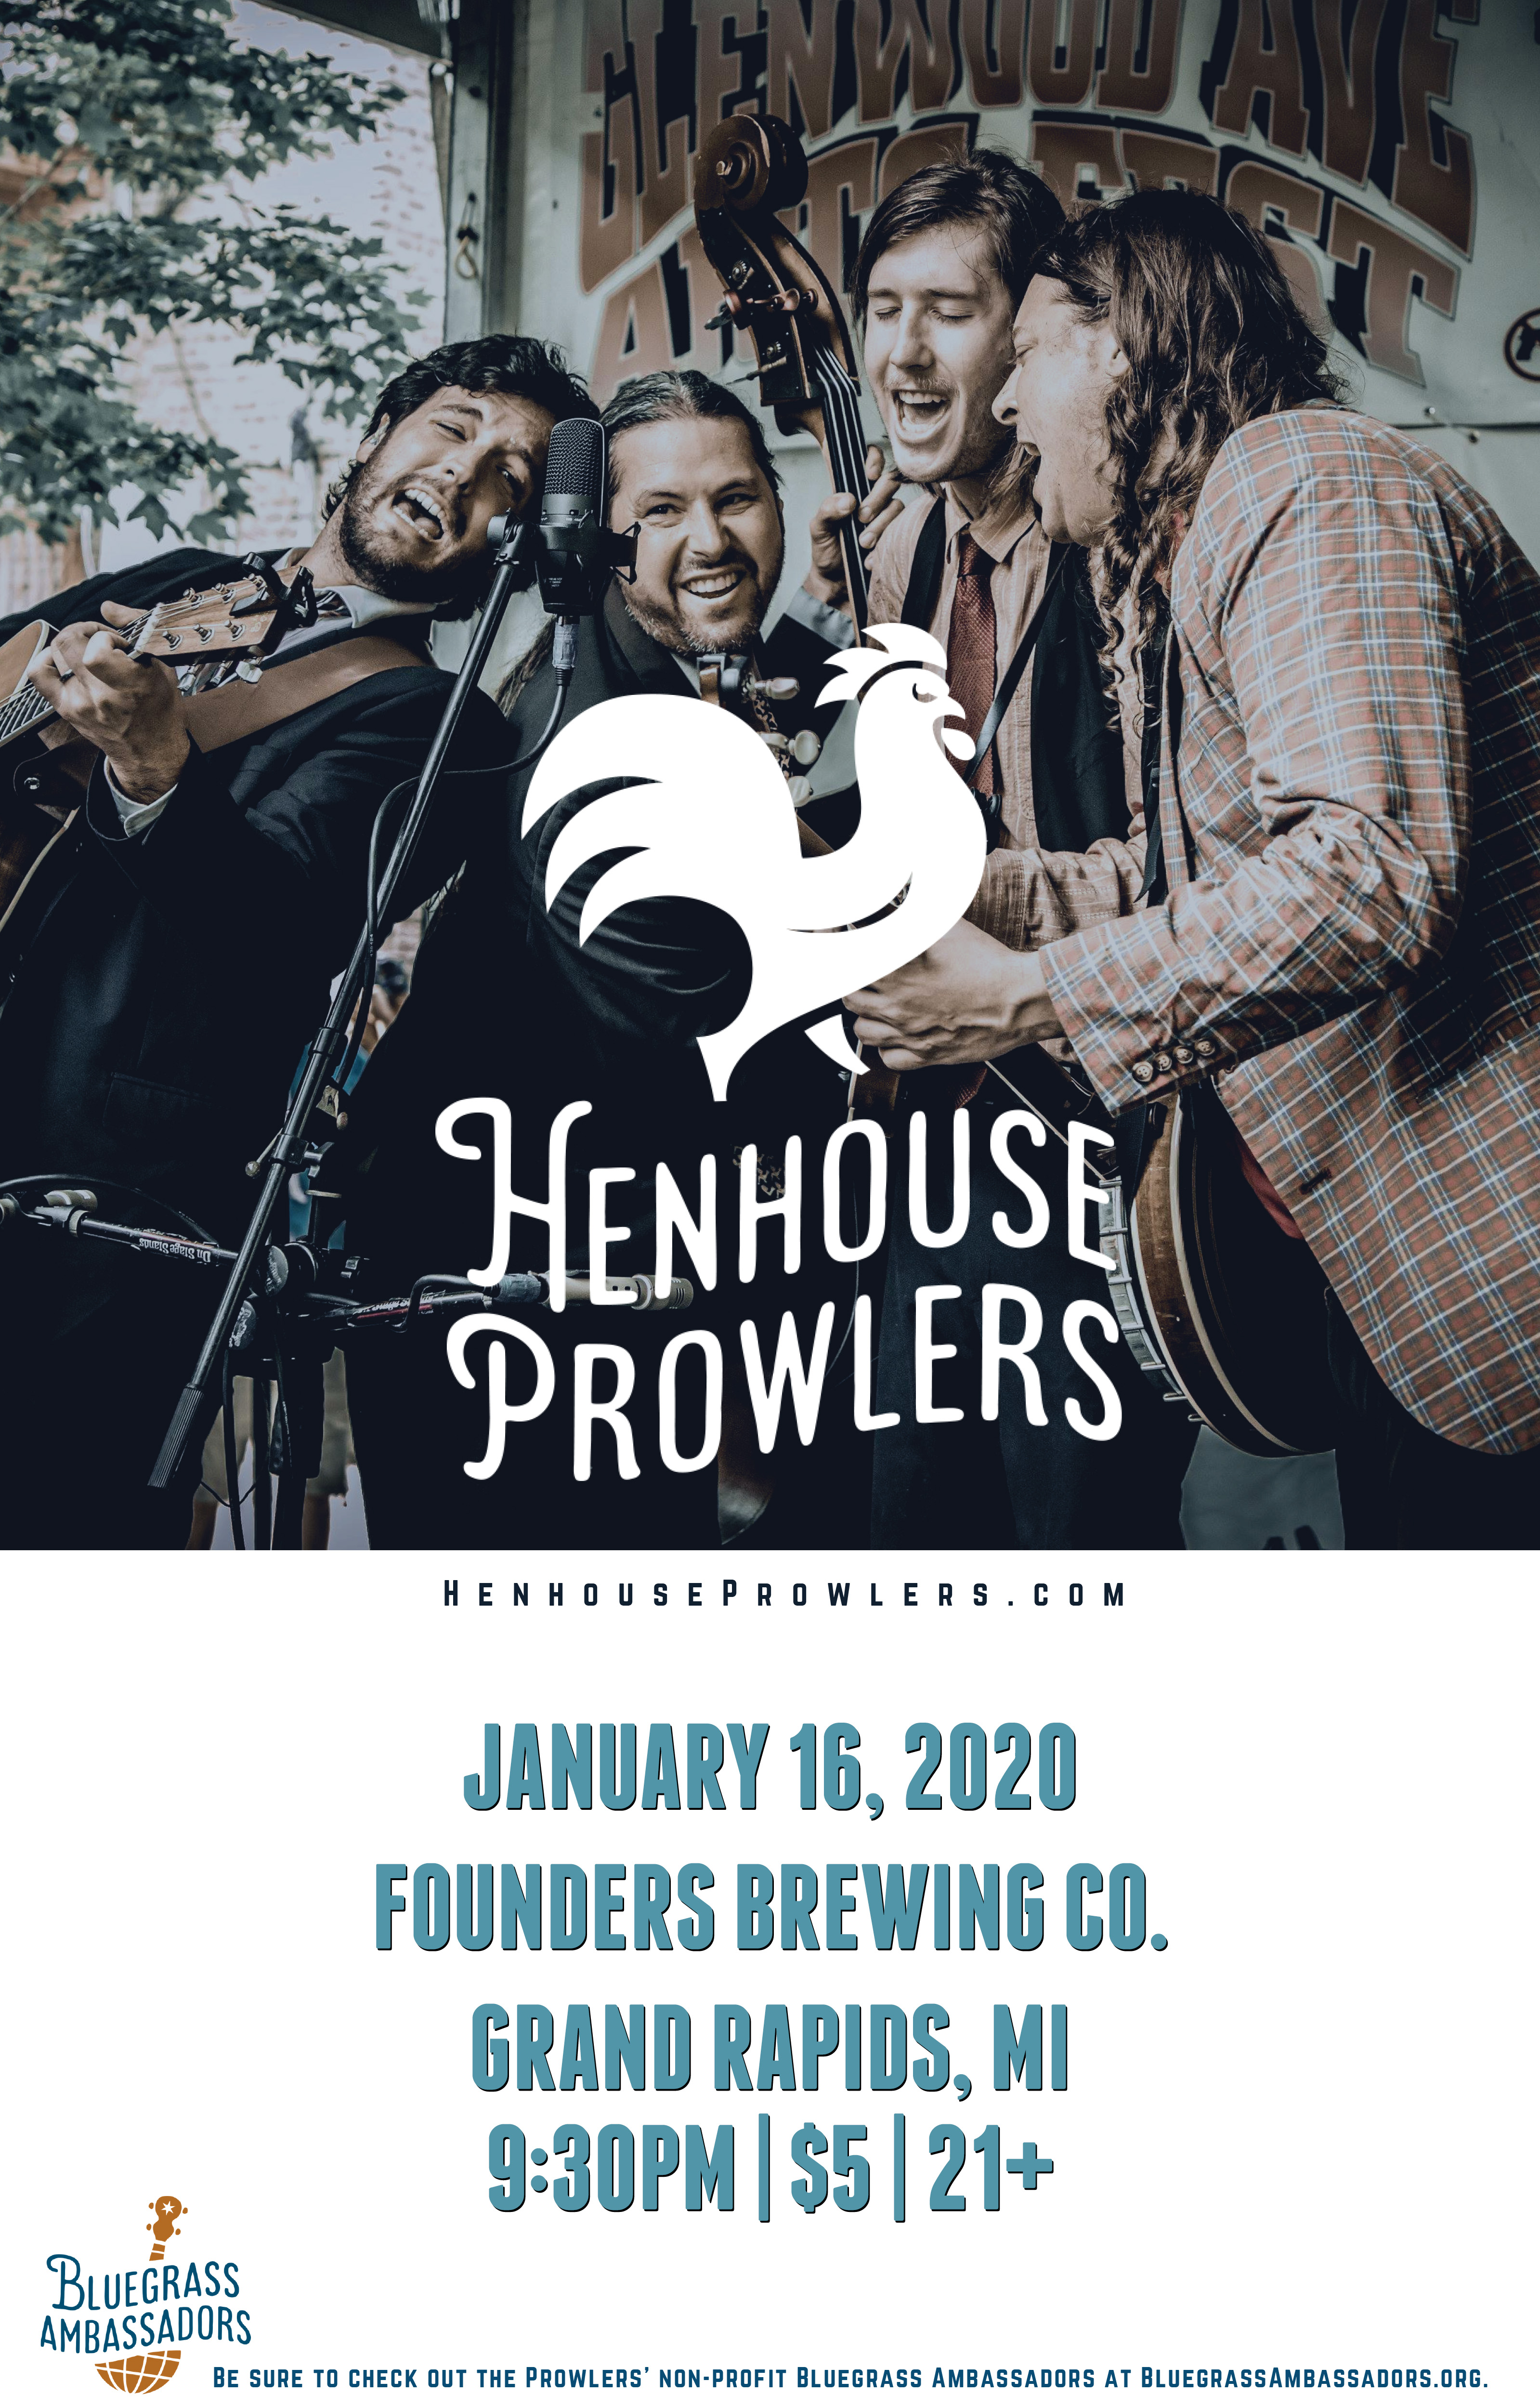 Henhouse Prowlers event poster hosted by Founders Brewing Co.